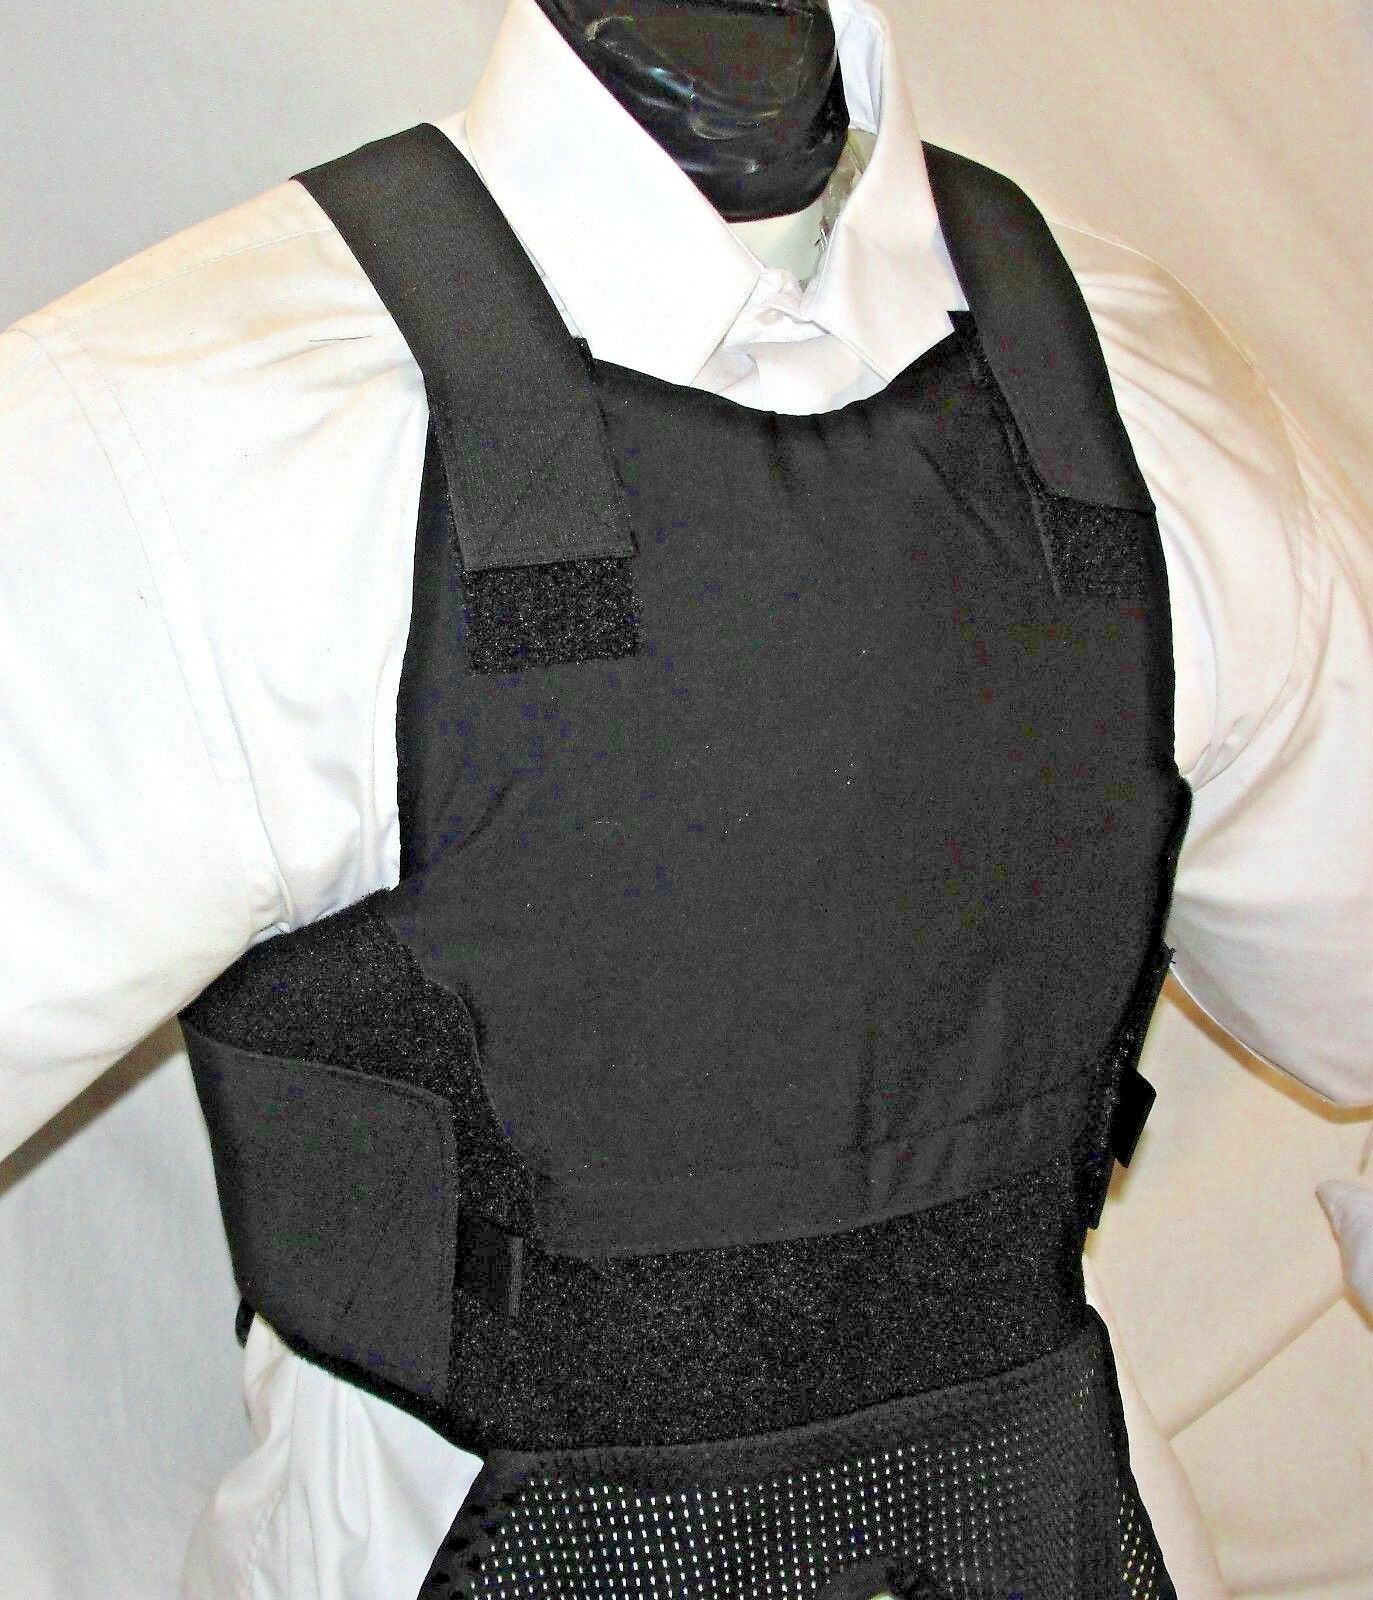 New Medium Lo Vis Concealable  Carrier  IIIA Inserts Body Armor BulletProof Vest  save 60% discount